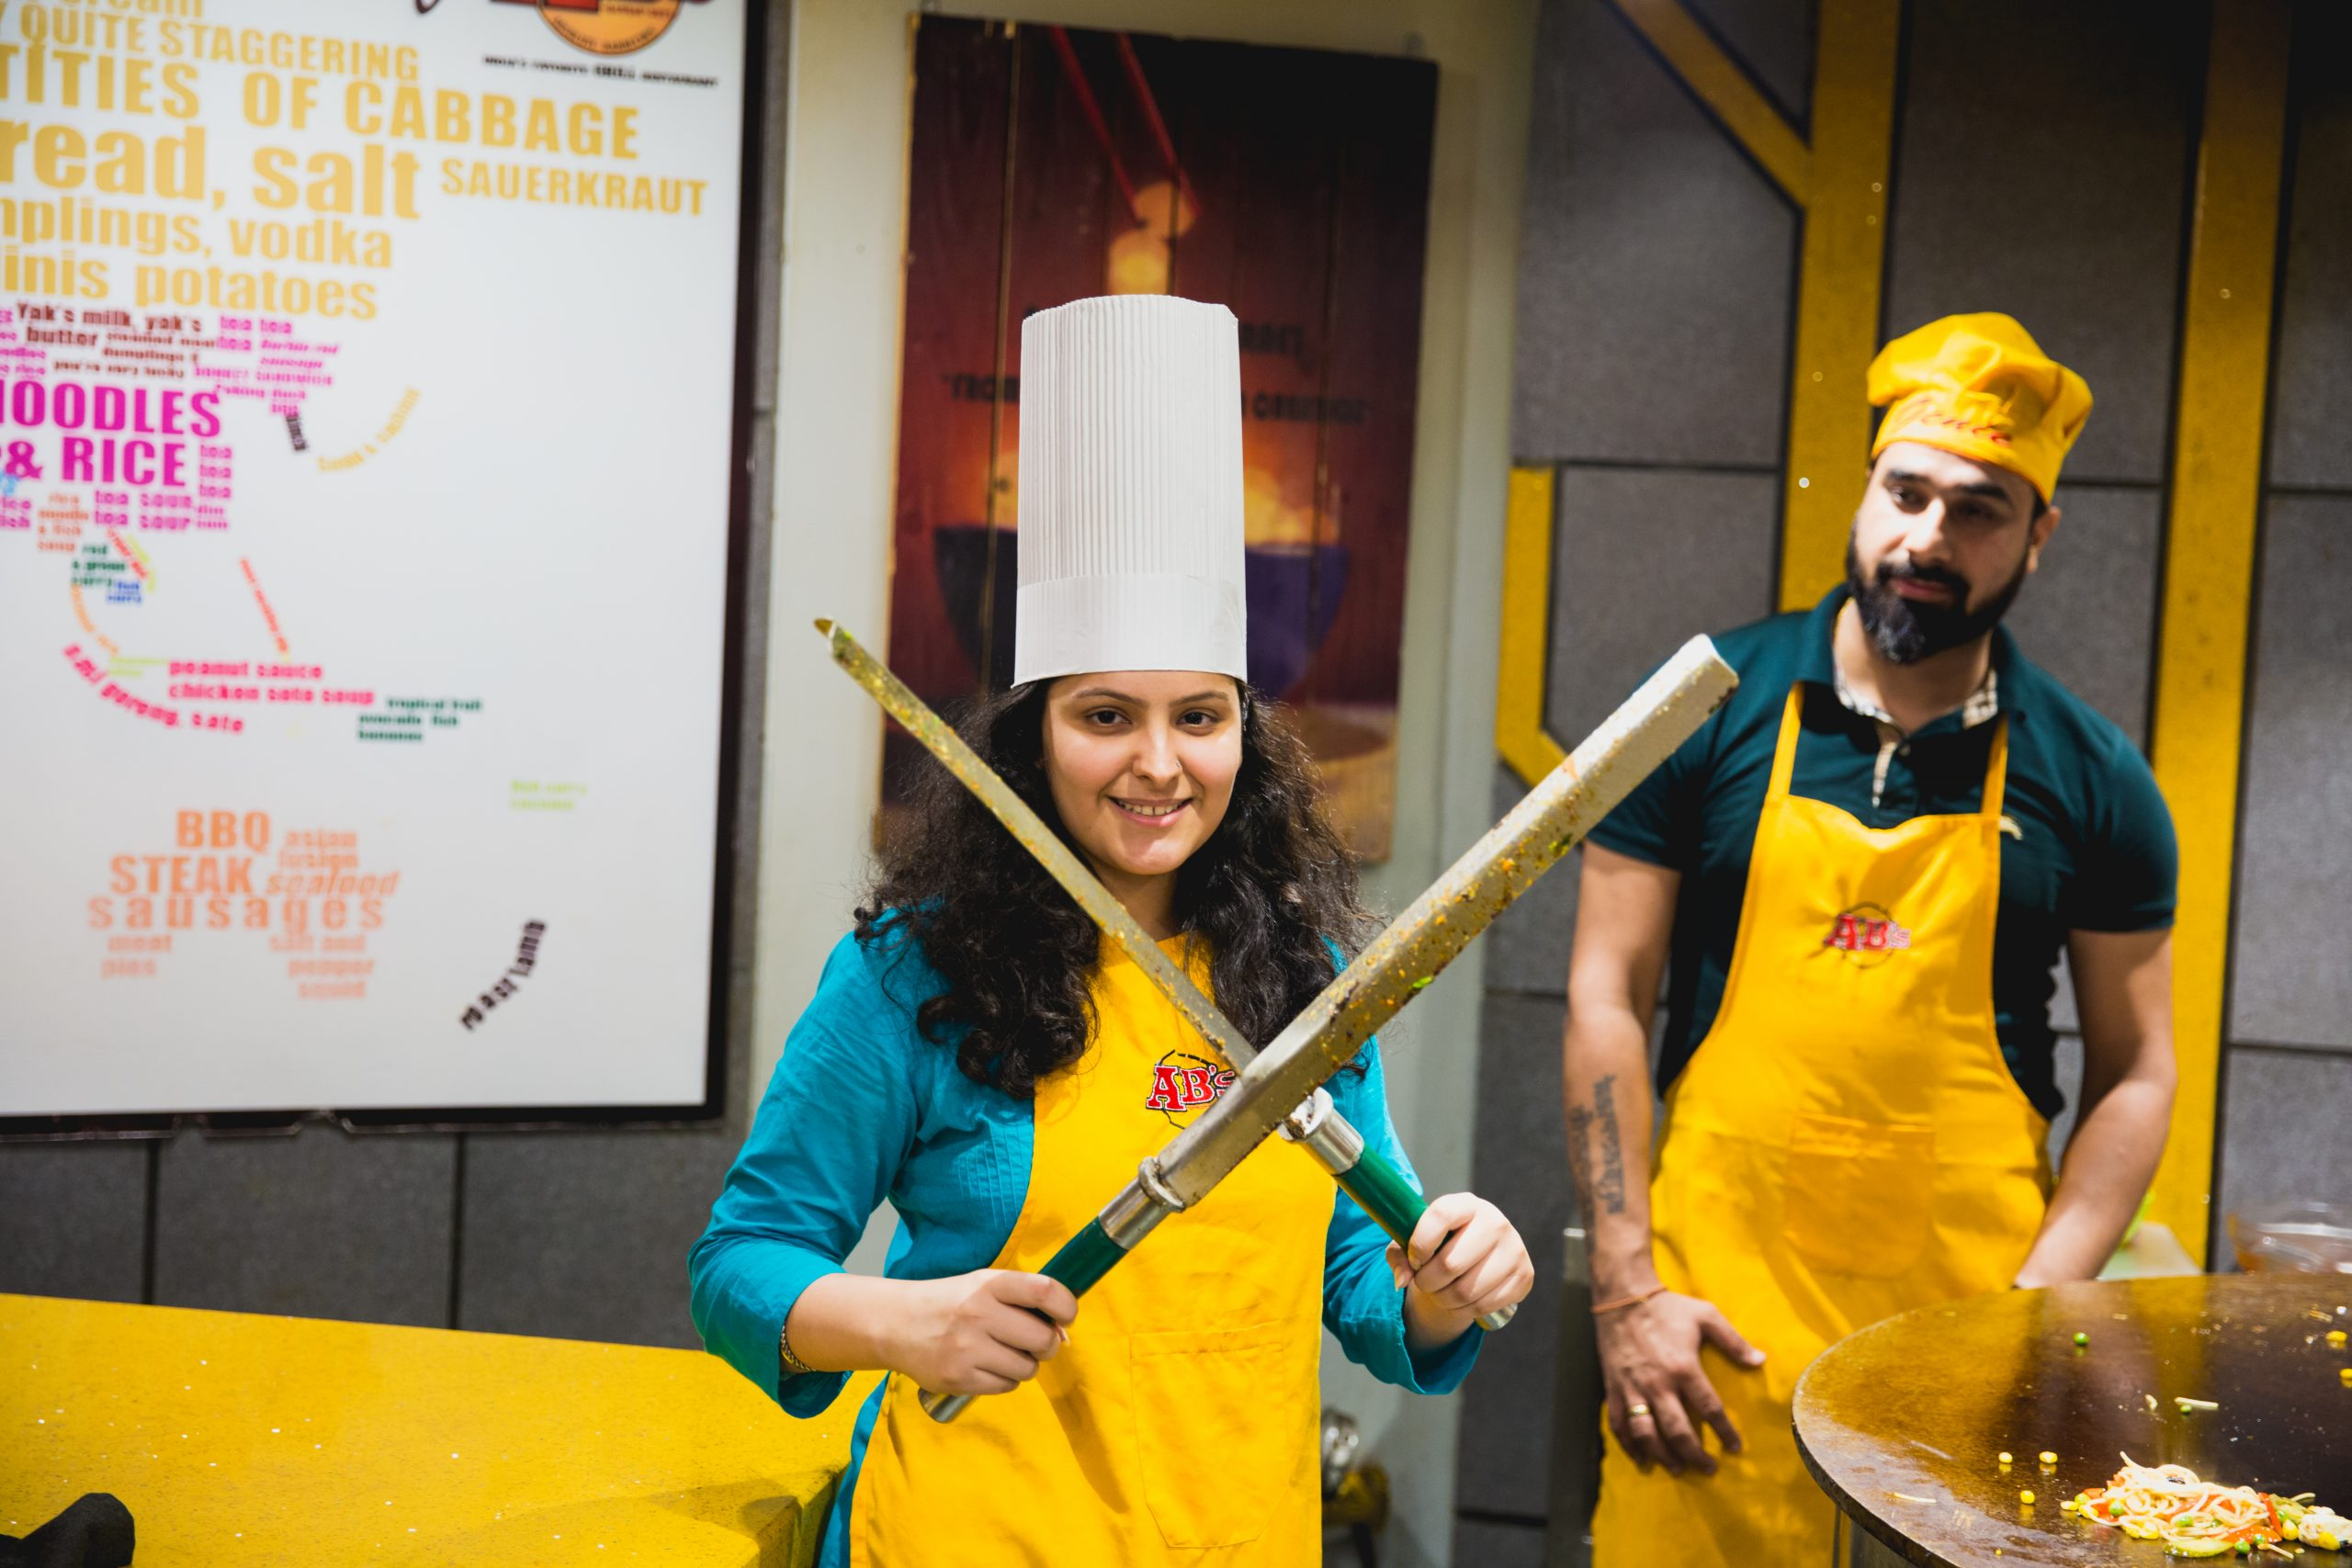 136 Dishes @ Just 599! Absolute Barbecue in Gurgaon Gives Your Regular Barbecuing Experience an Awesome Edge!